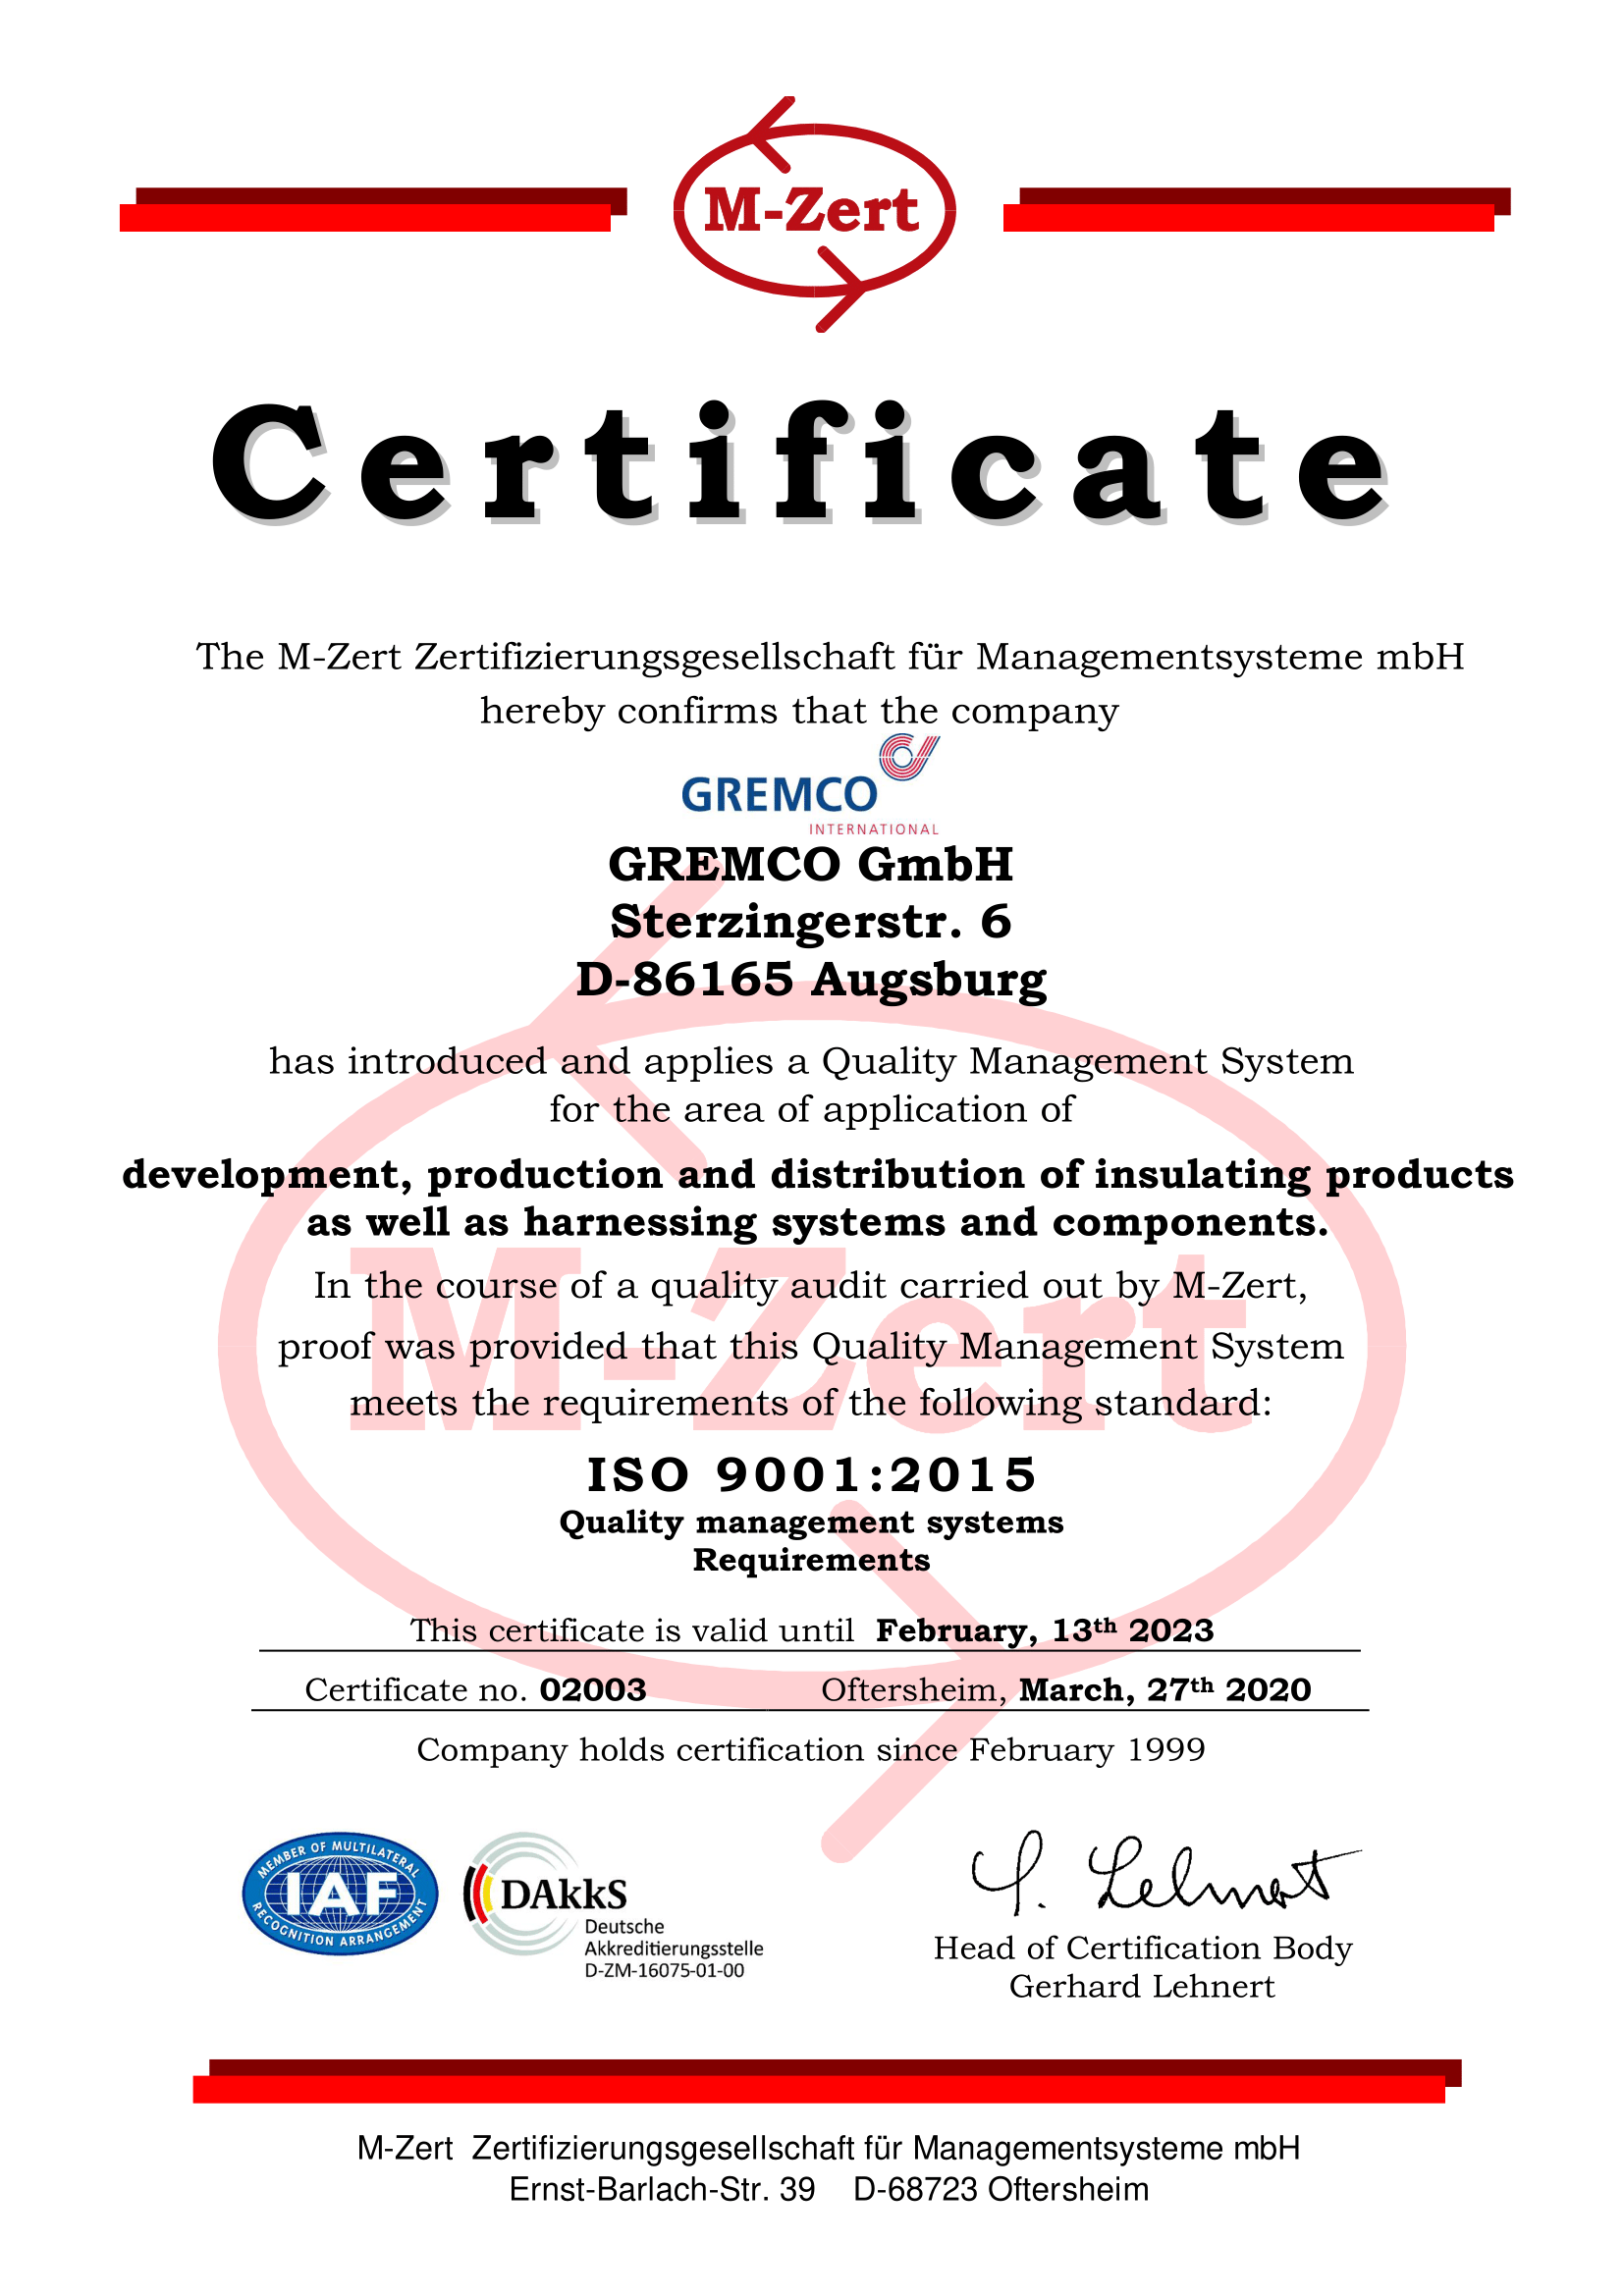 GREMCO GmbH Certificate for quality management of cabling systems and insulation products according to DIN EN ISO 9001:2015